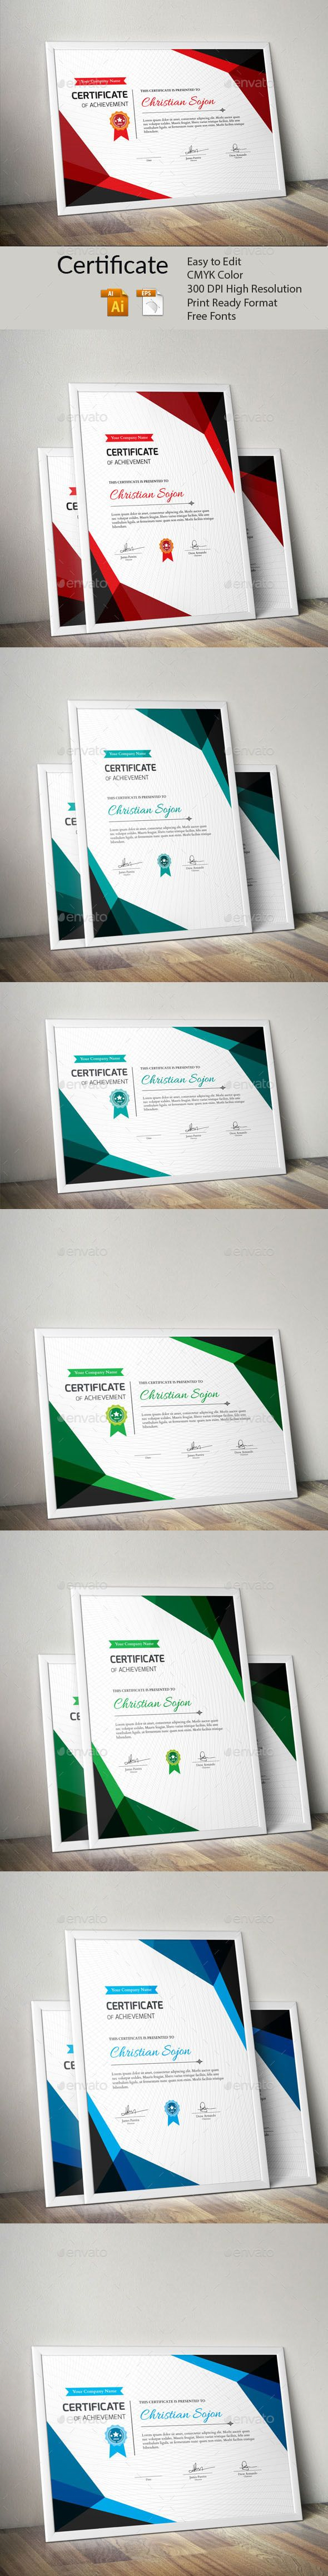 #Certificate - Certificates Stationery Download here: https://graphicriver.net/item/certificate/19707878?ref=alena994